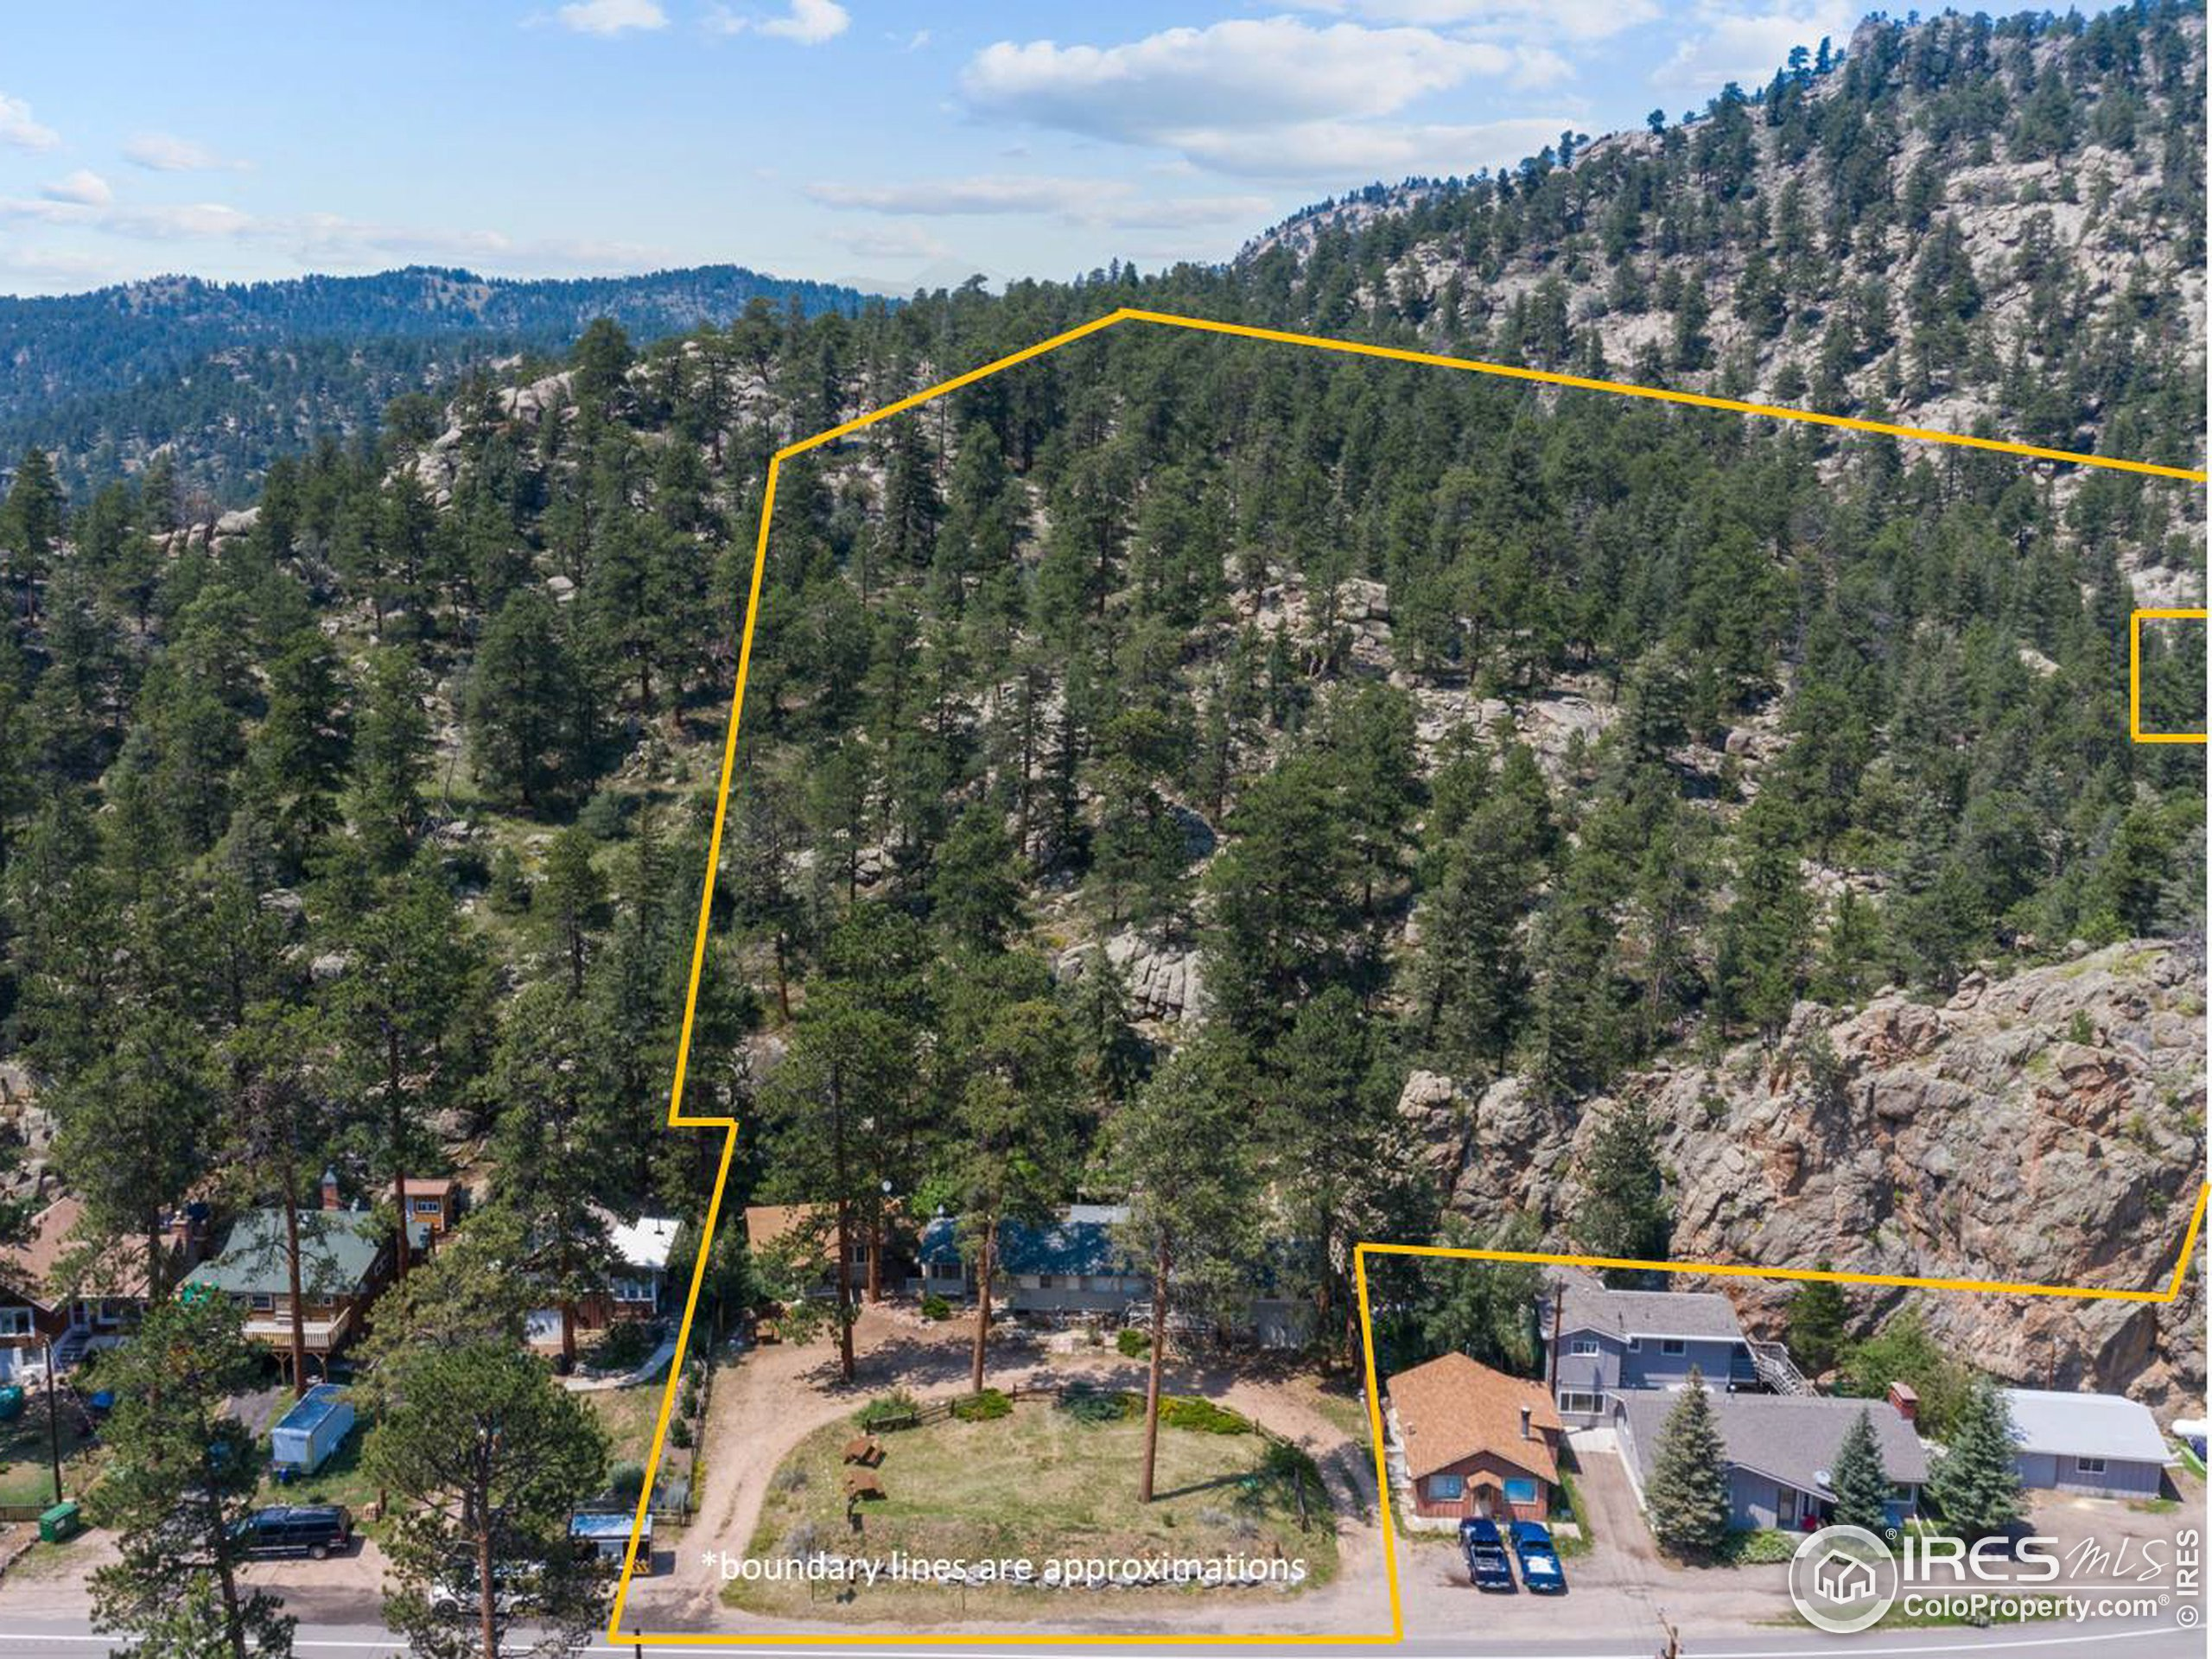 4.06 acres abutting National Forest